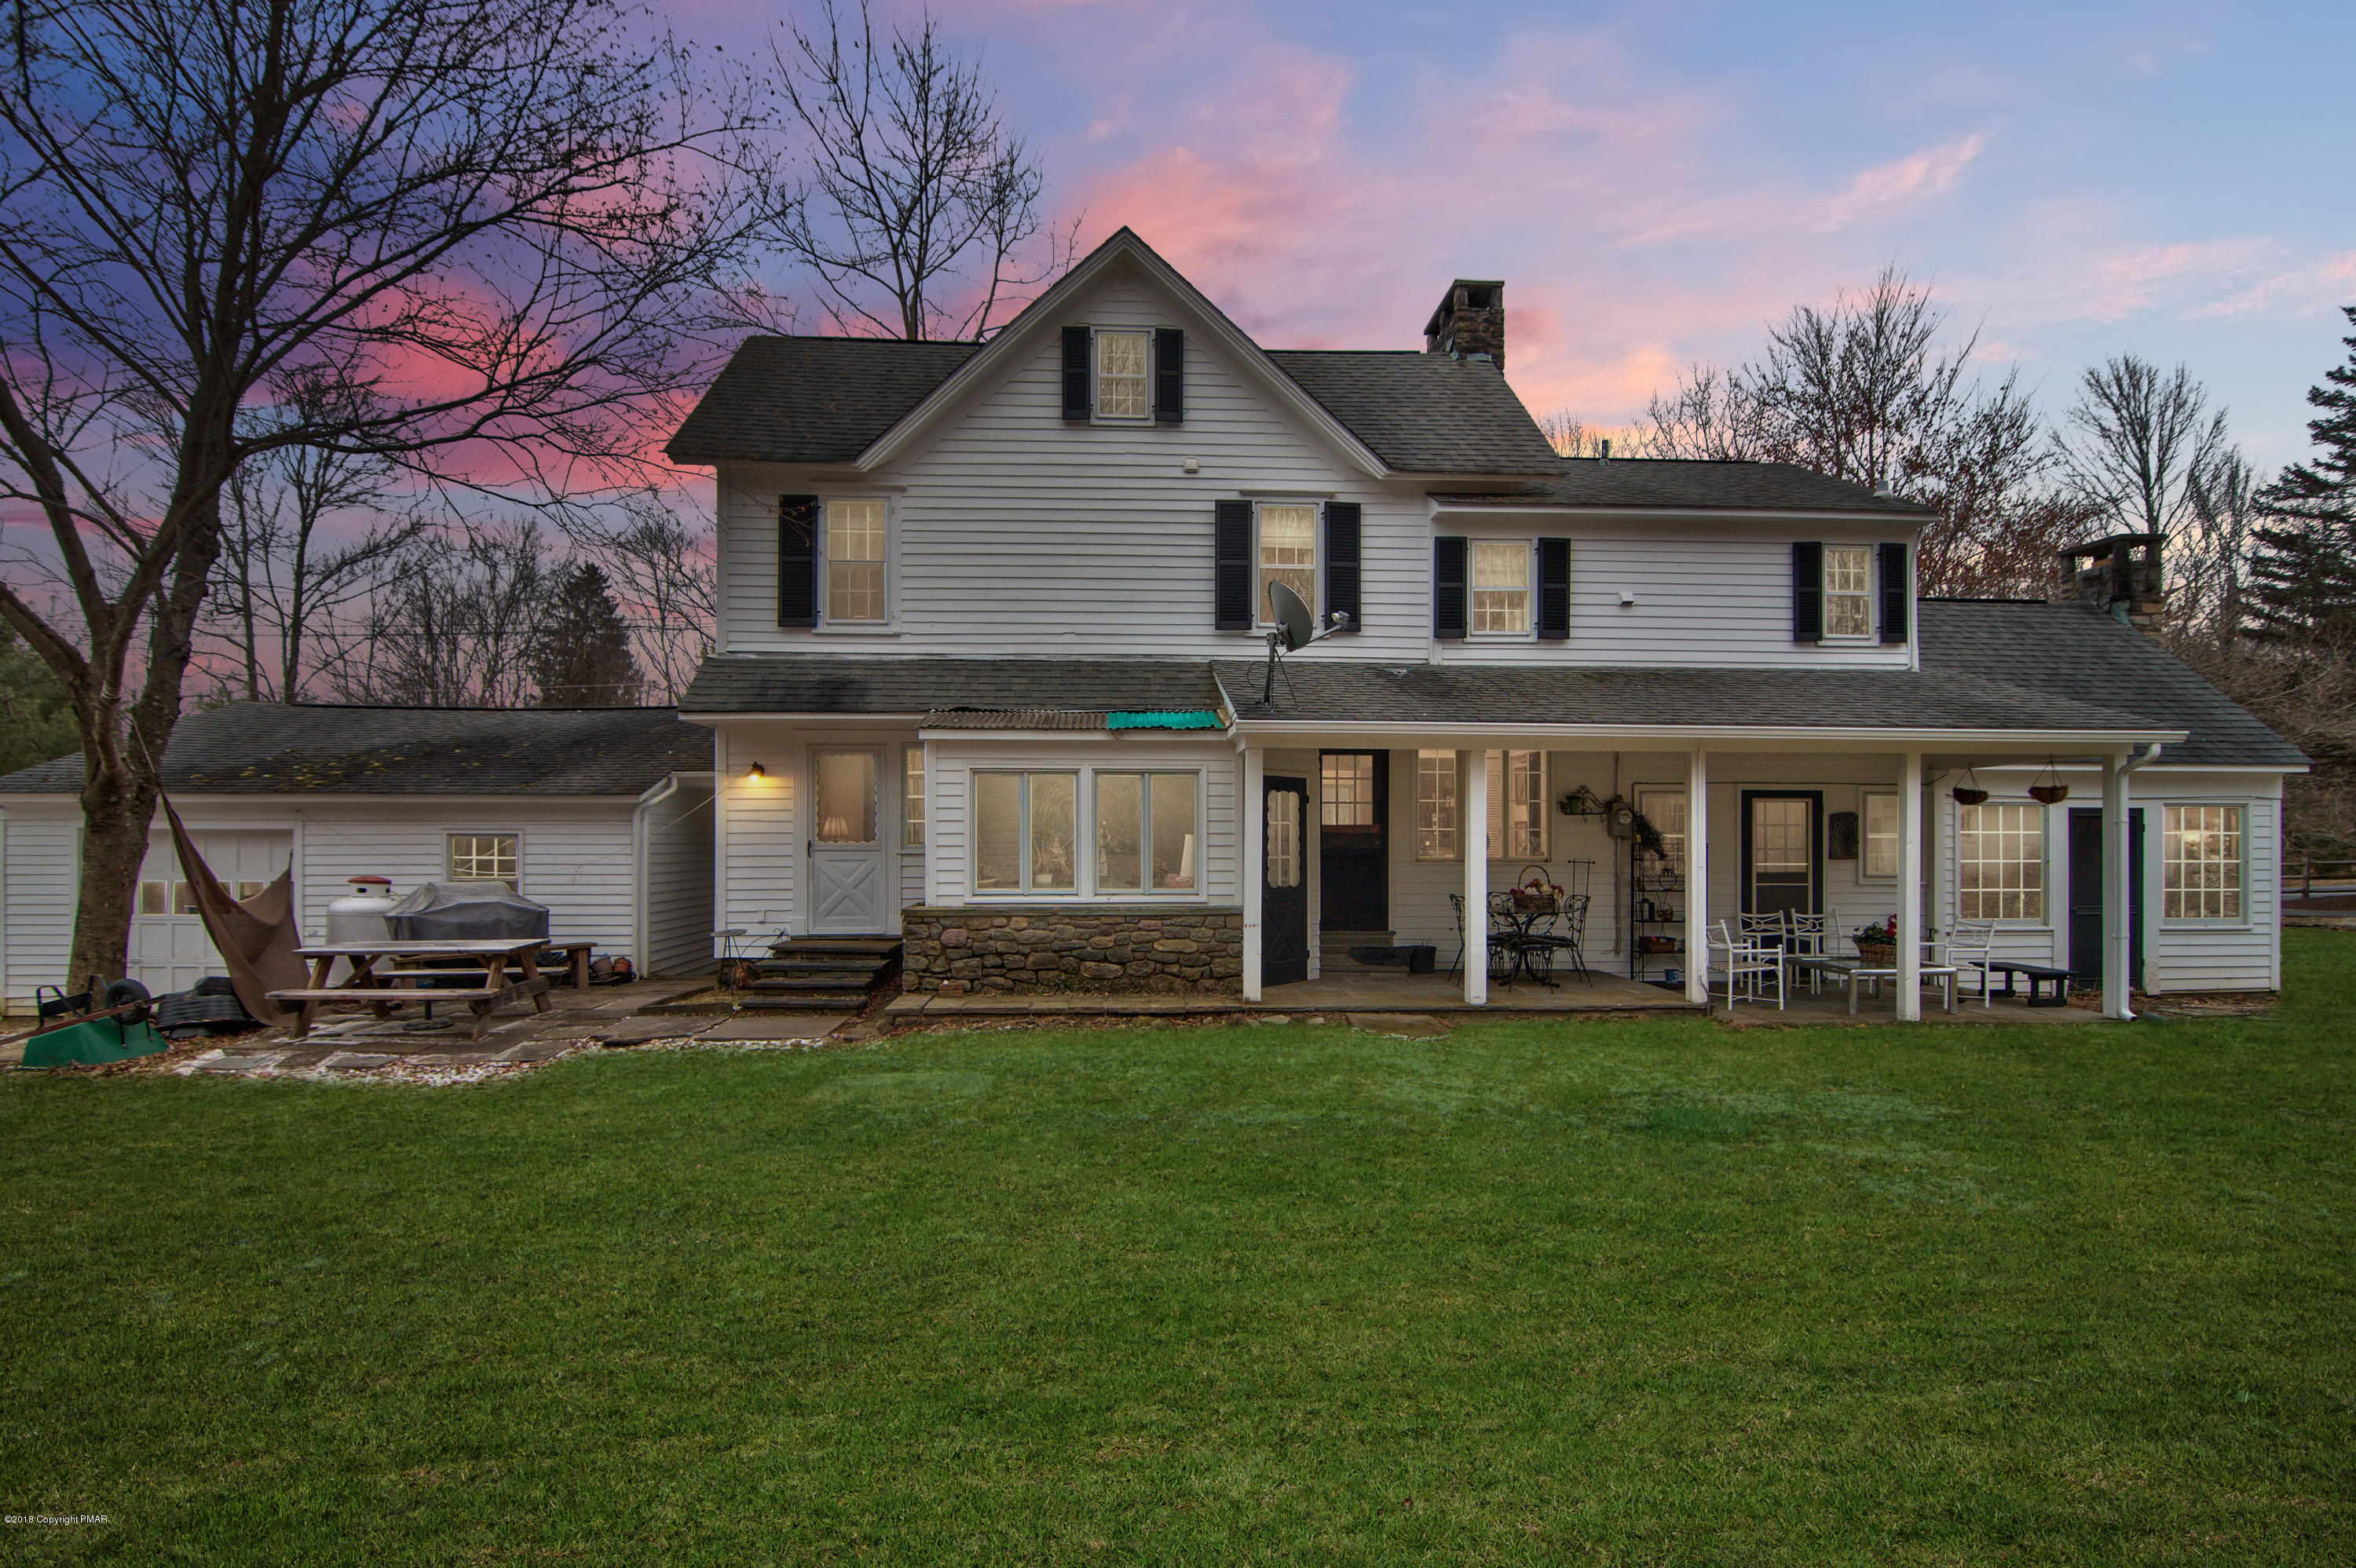 457 Golf Dr, Buck Hill Falls, PA 18323